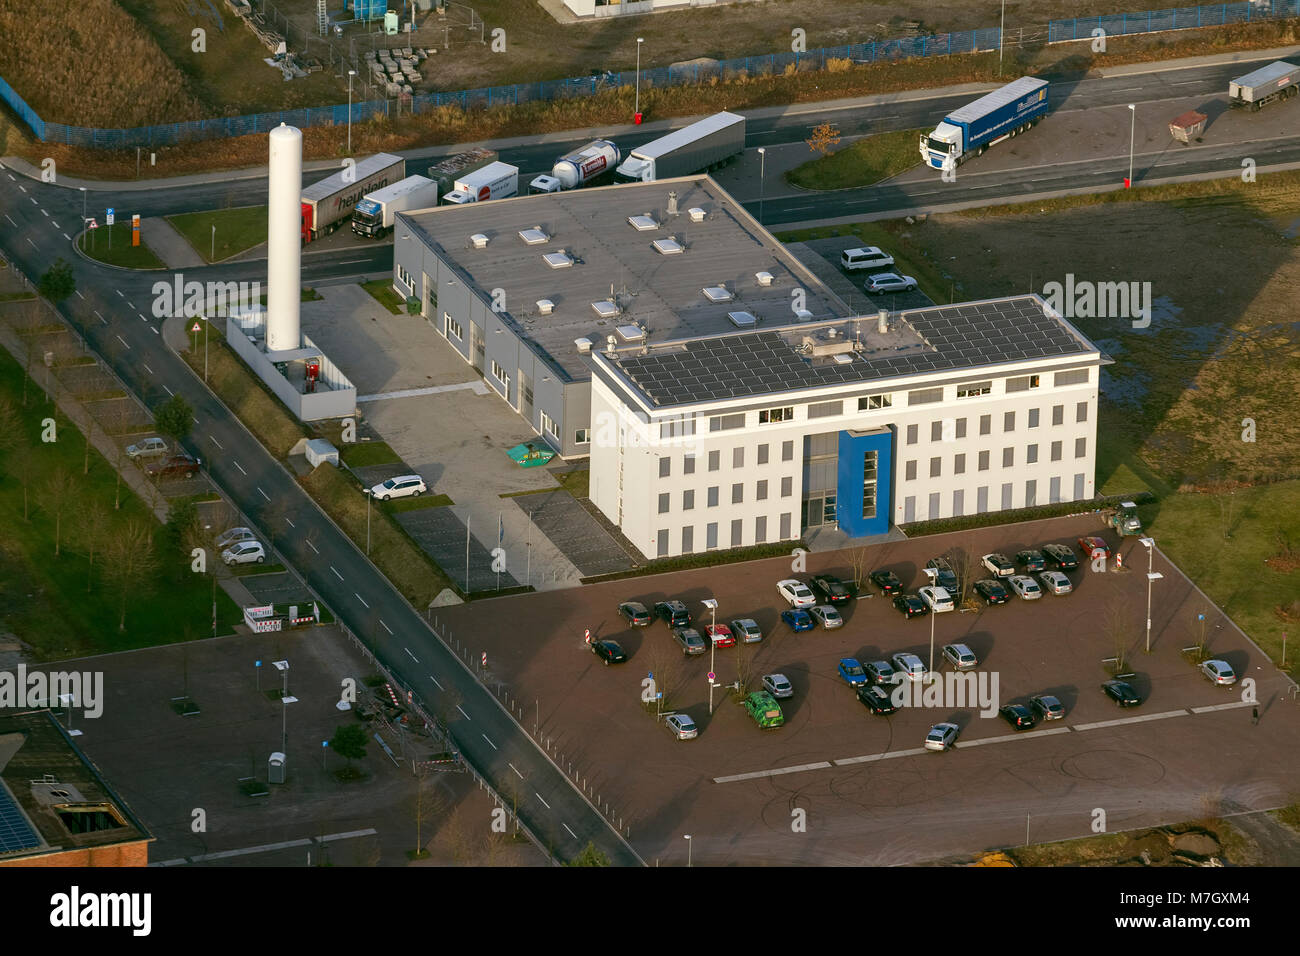 Luftbild, h2herten, hydrogen competence center, wind electricity electrolysis in the hydrogen user center,, Herten, - Stock Image